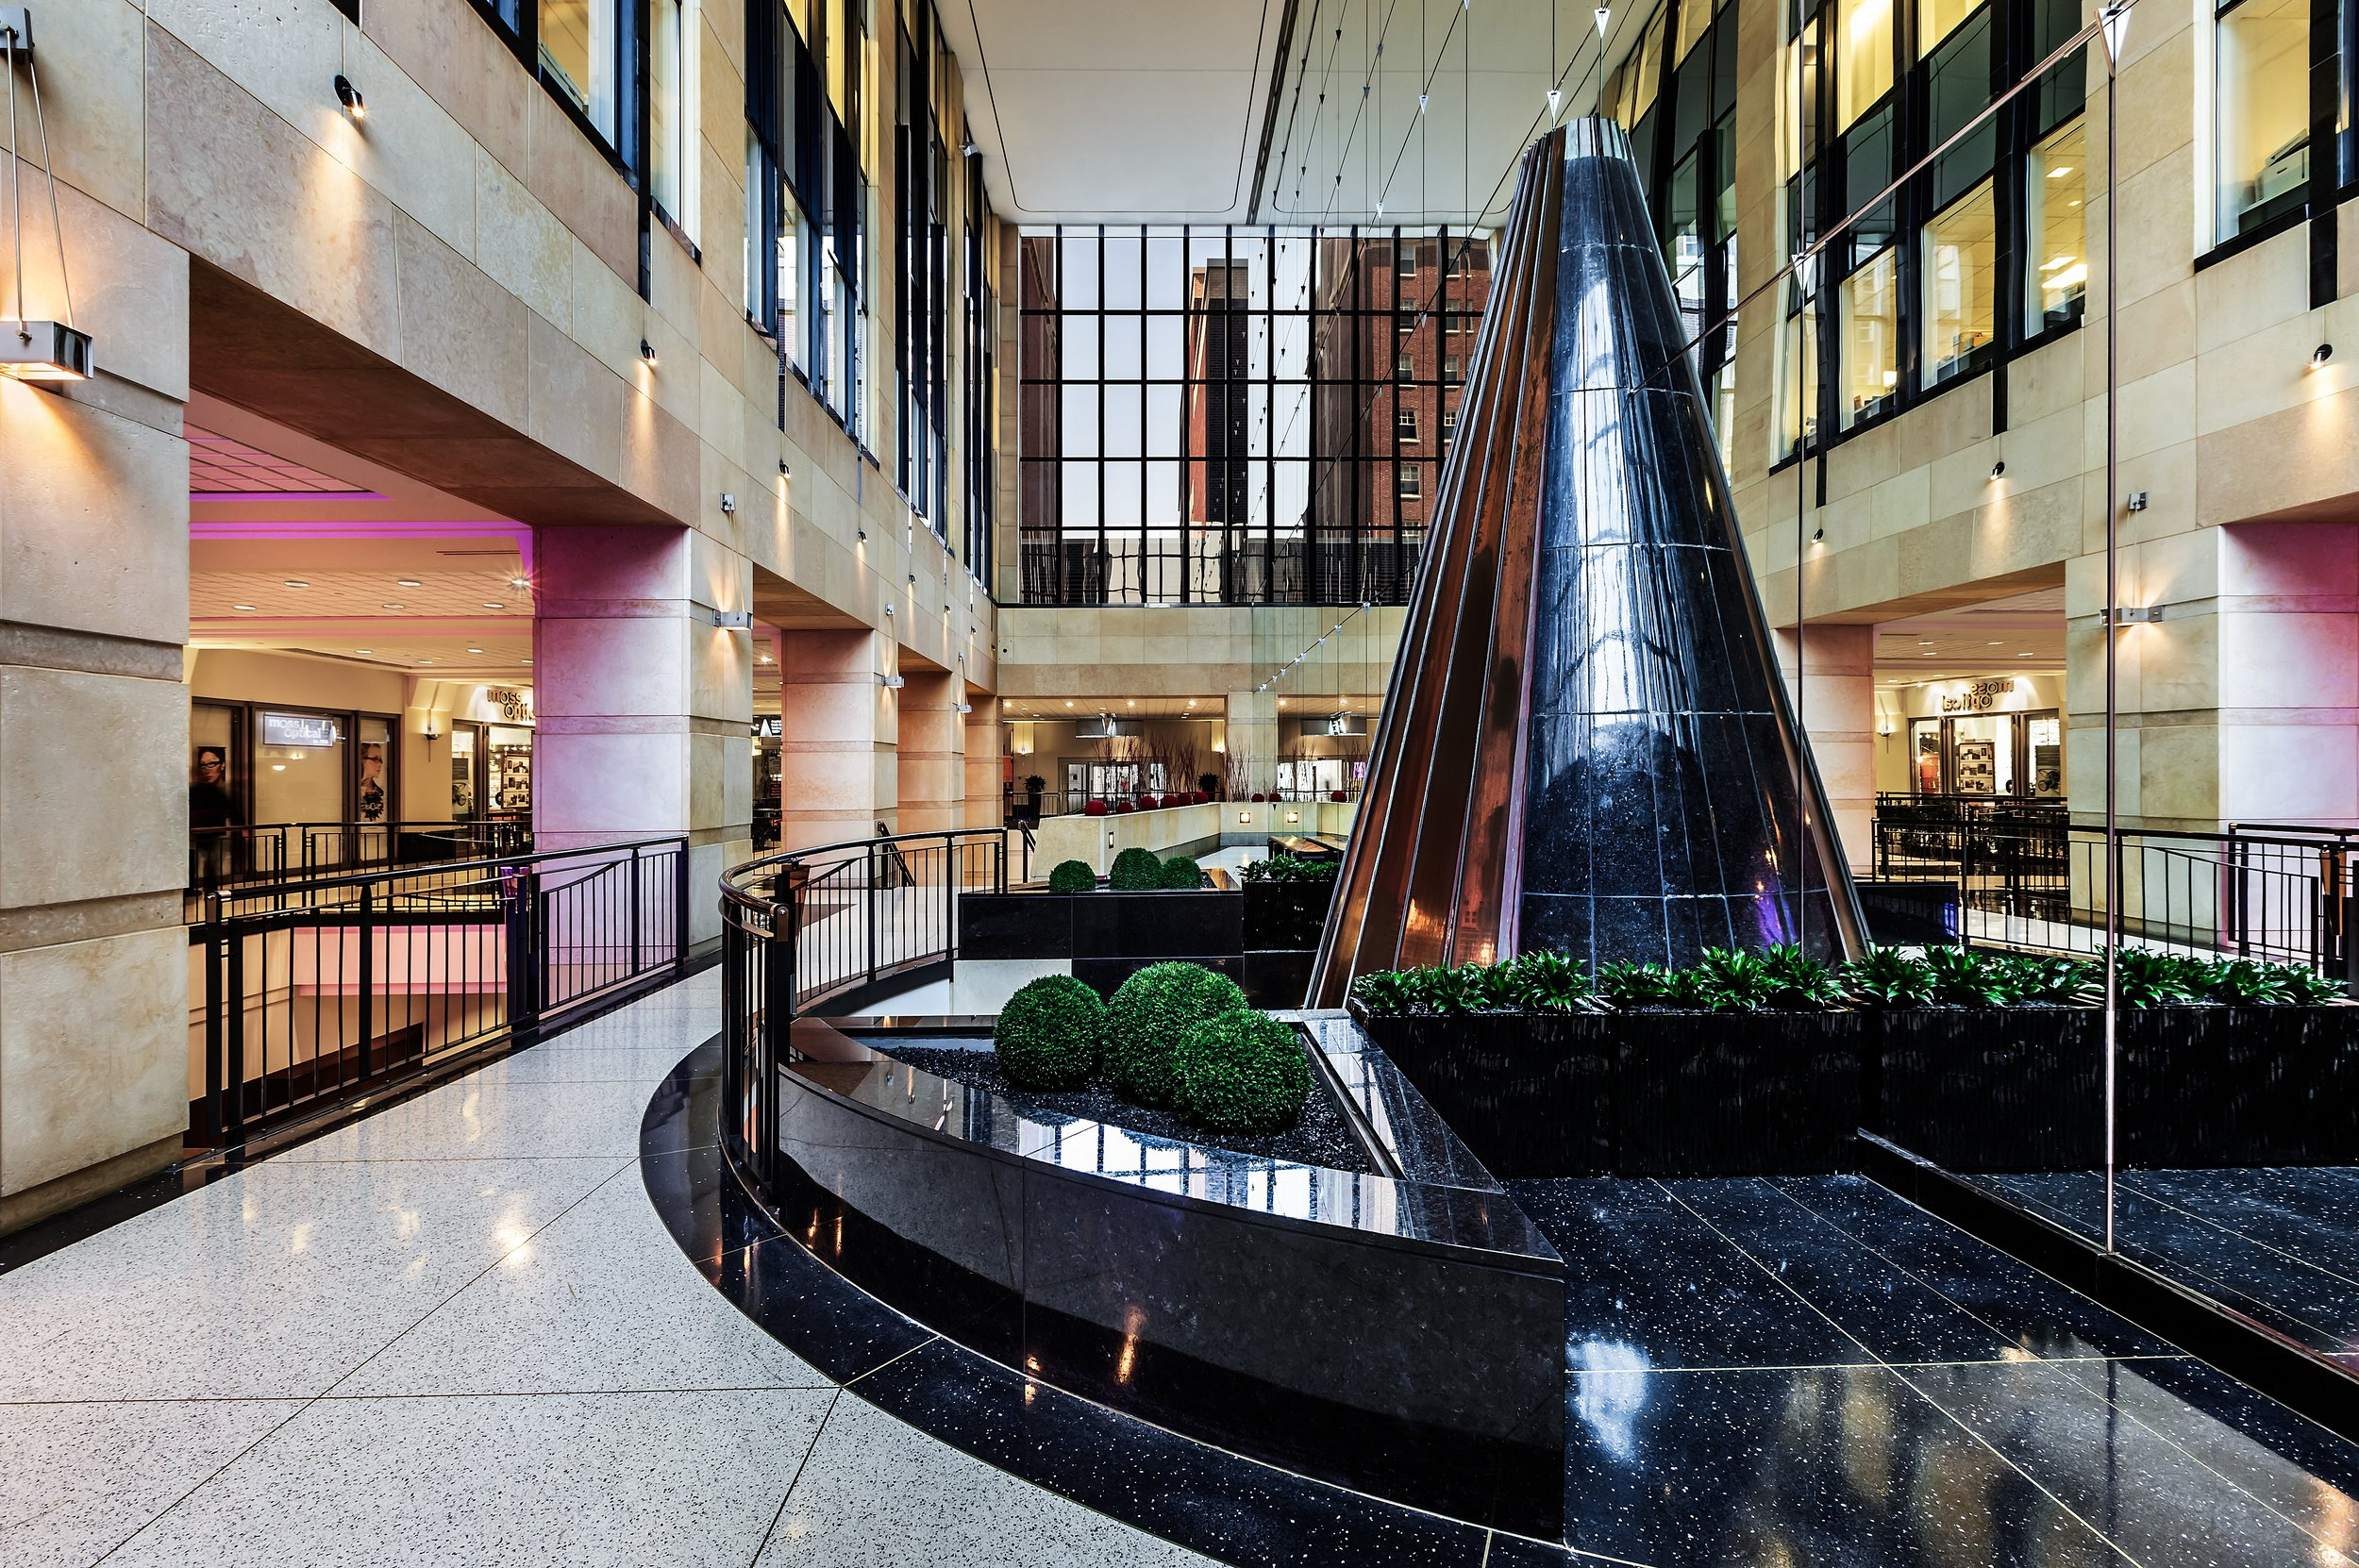 Lasalle Plaza - Located in the heart of downtown, LaSalle Plaza is a direct connection to the best in retail, entertainment and transportation. Its distinguished architecture, superior finishes and location provide a striking multi-use building with high-quality office and retail space. Inside, the expansive lobby and retail areas feature trophy finishes and one-of-a-kind artwork.